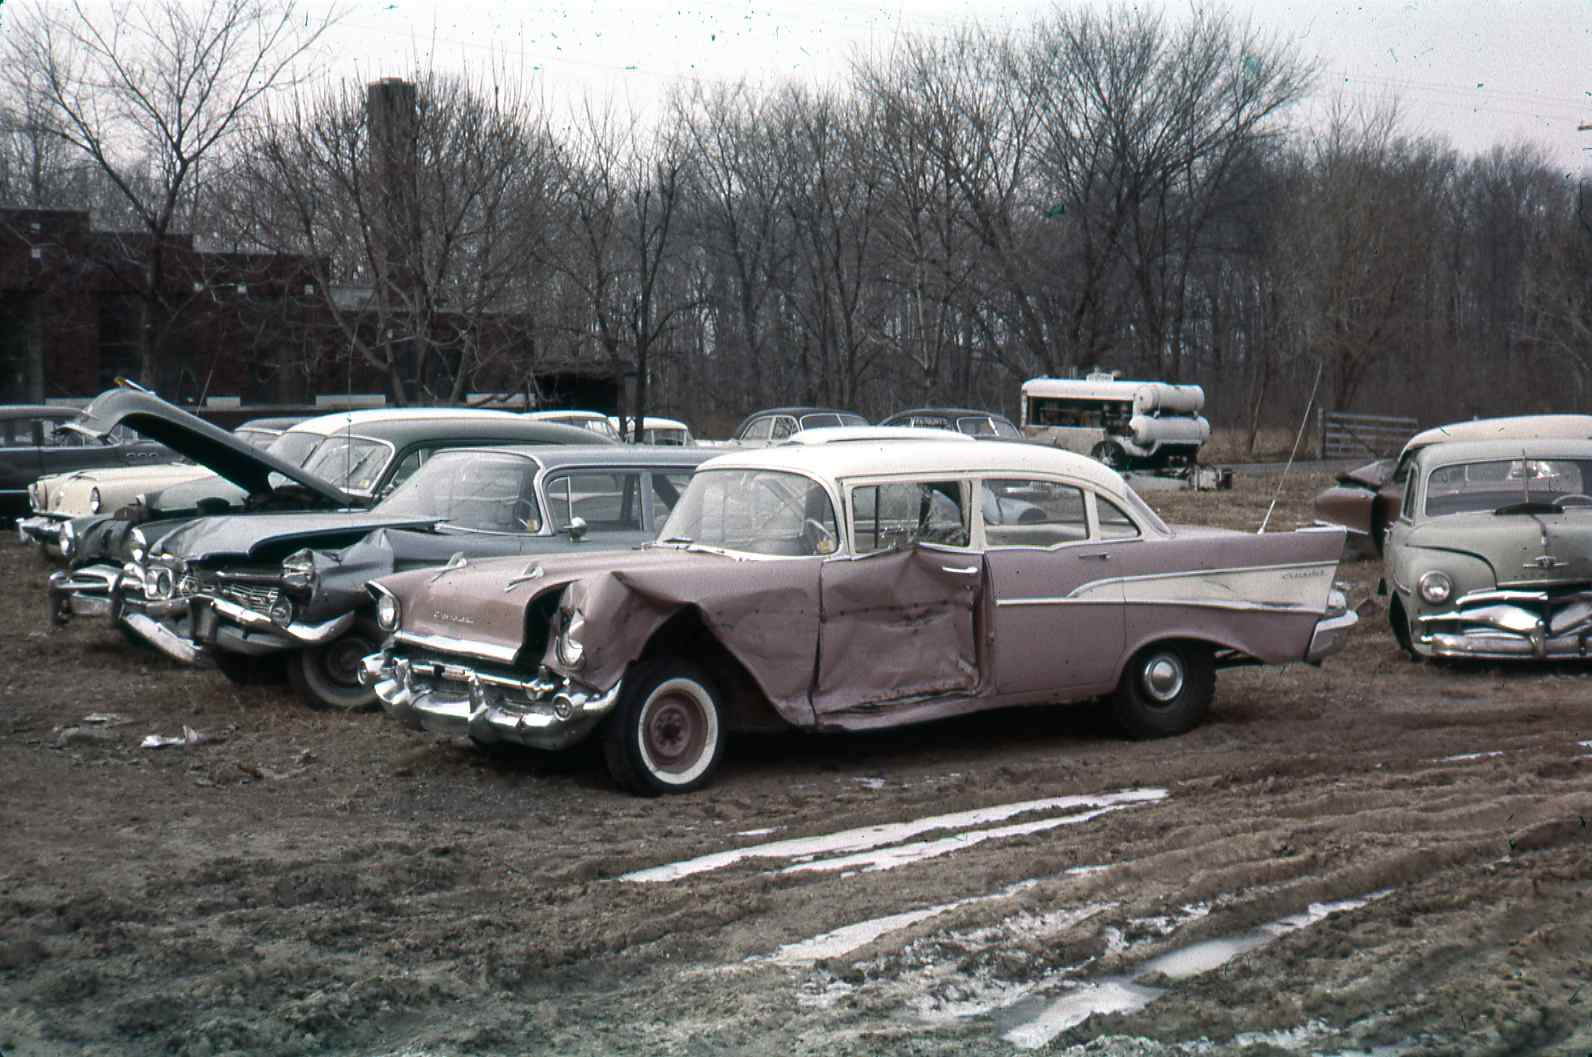 hight resolution of the gm ignition module junkyard with multiple cars and three old chevy models in a late fall landscape